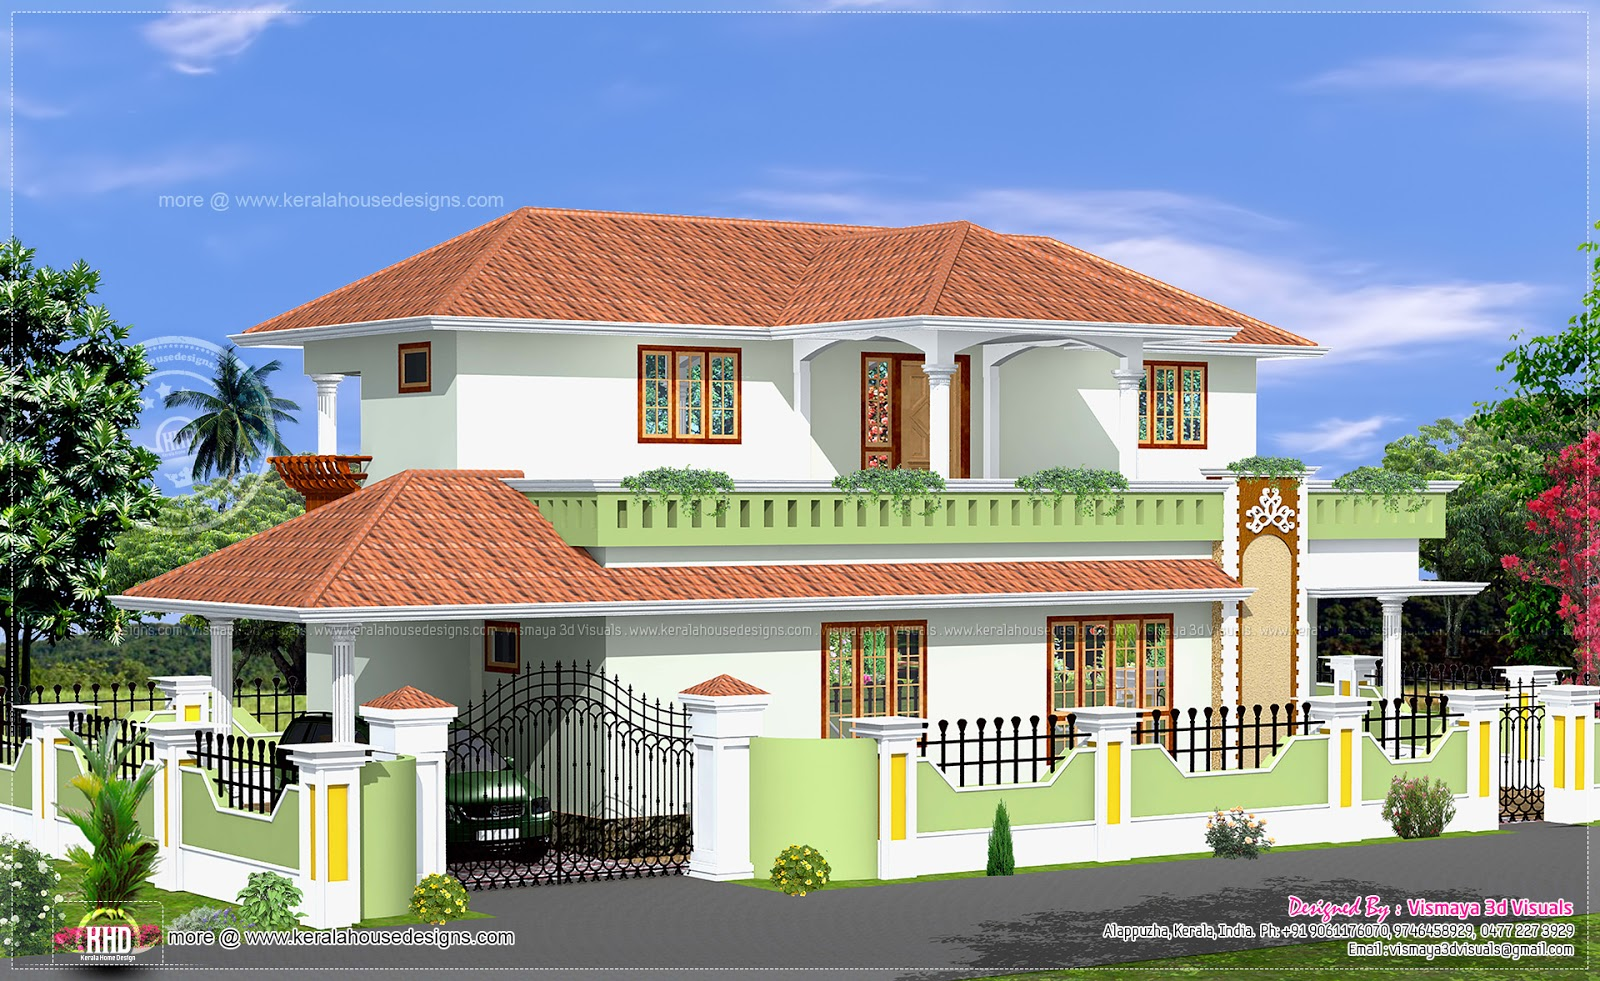 Simple house designs kerala style home design and style for Simple home design ideas